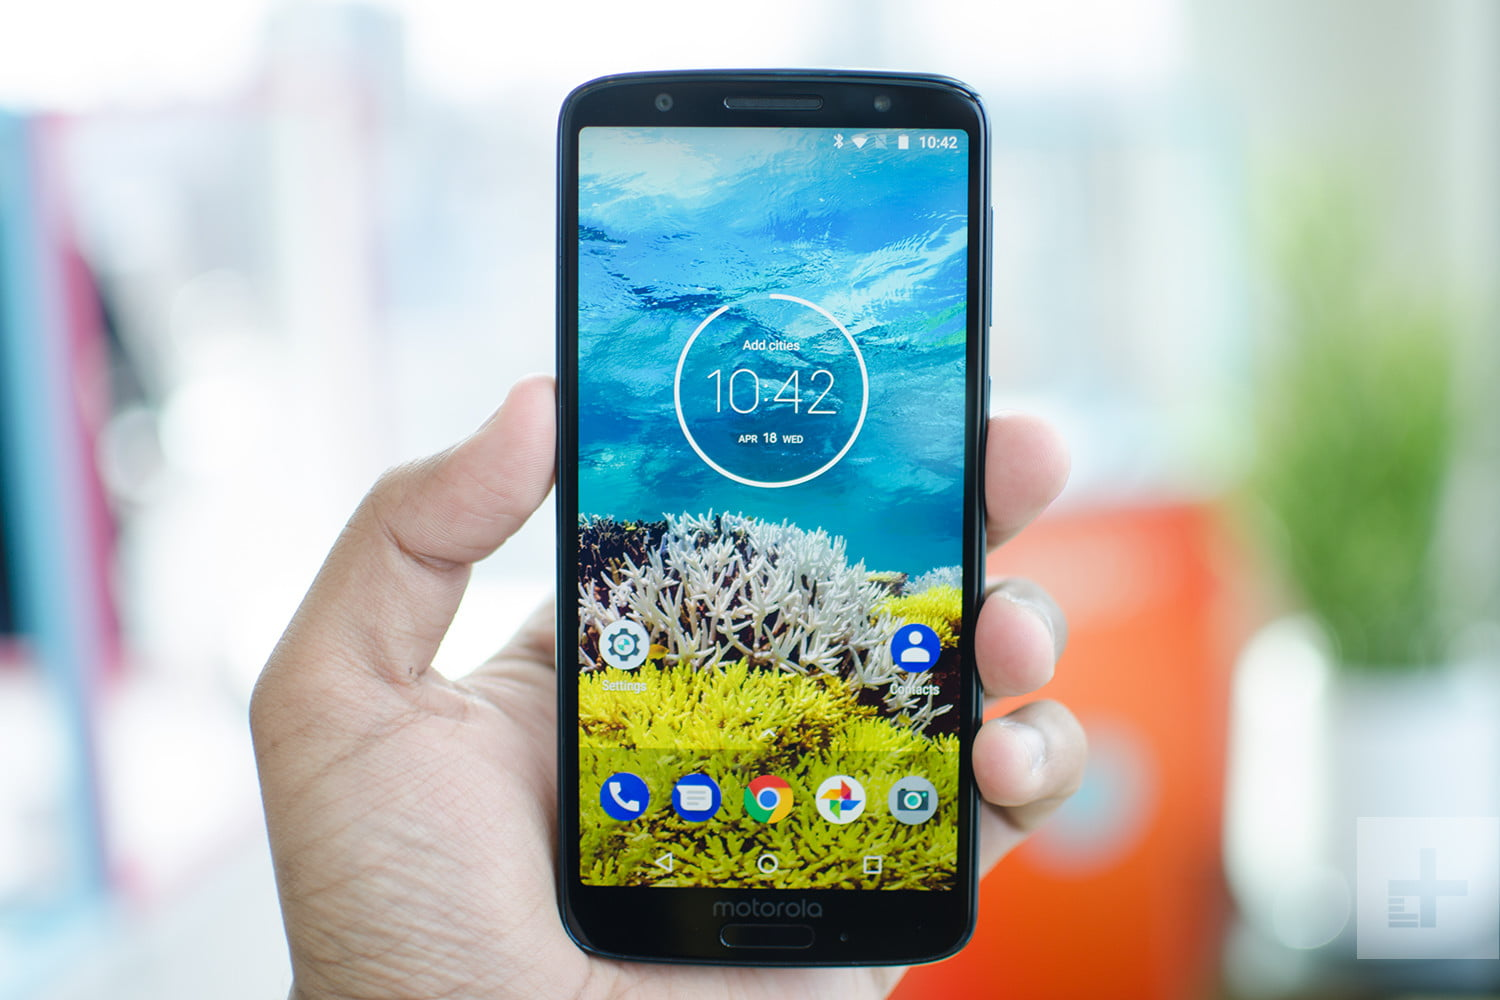 Here Are Moto G6 Tips and Tricks to Help You Master Your New Phone